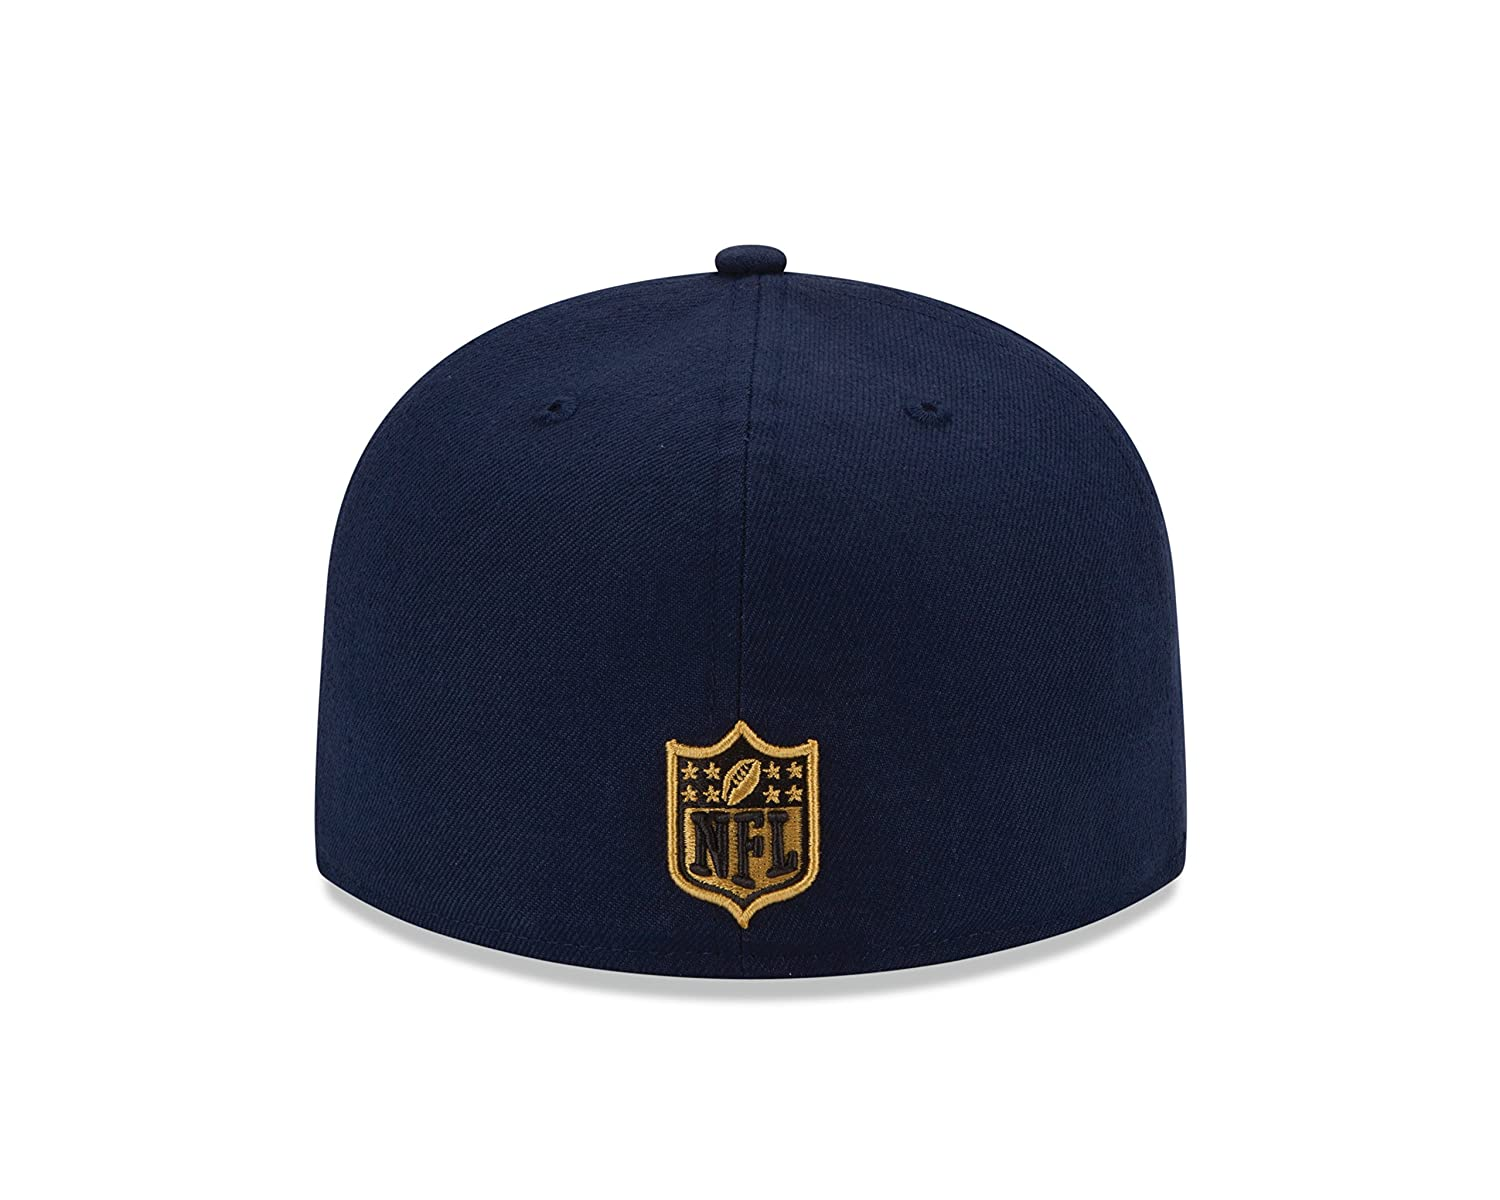 85450201c74 Amazon.com   New Era 2015 NFL Draft On Stage 59Fifty Fitted Cap   Sports    Outdoors